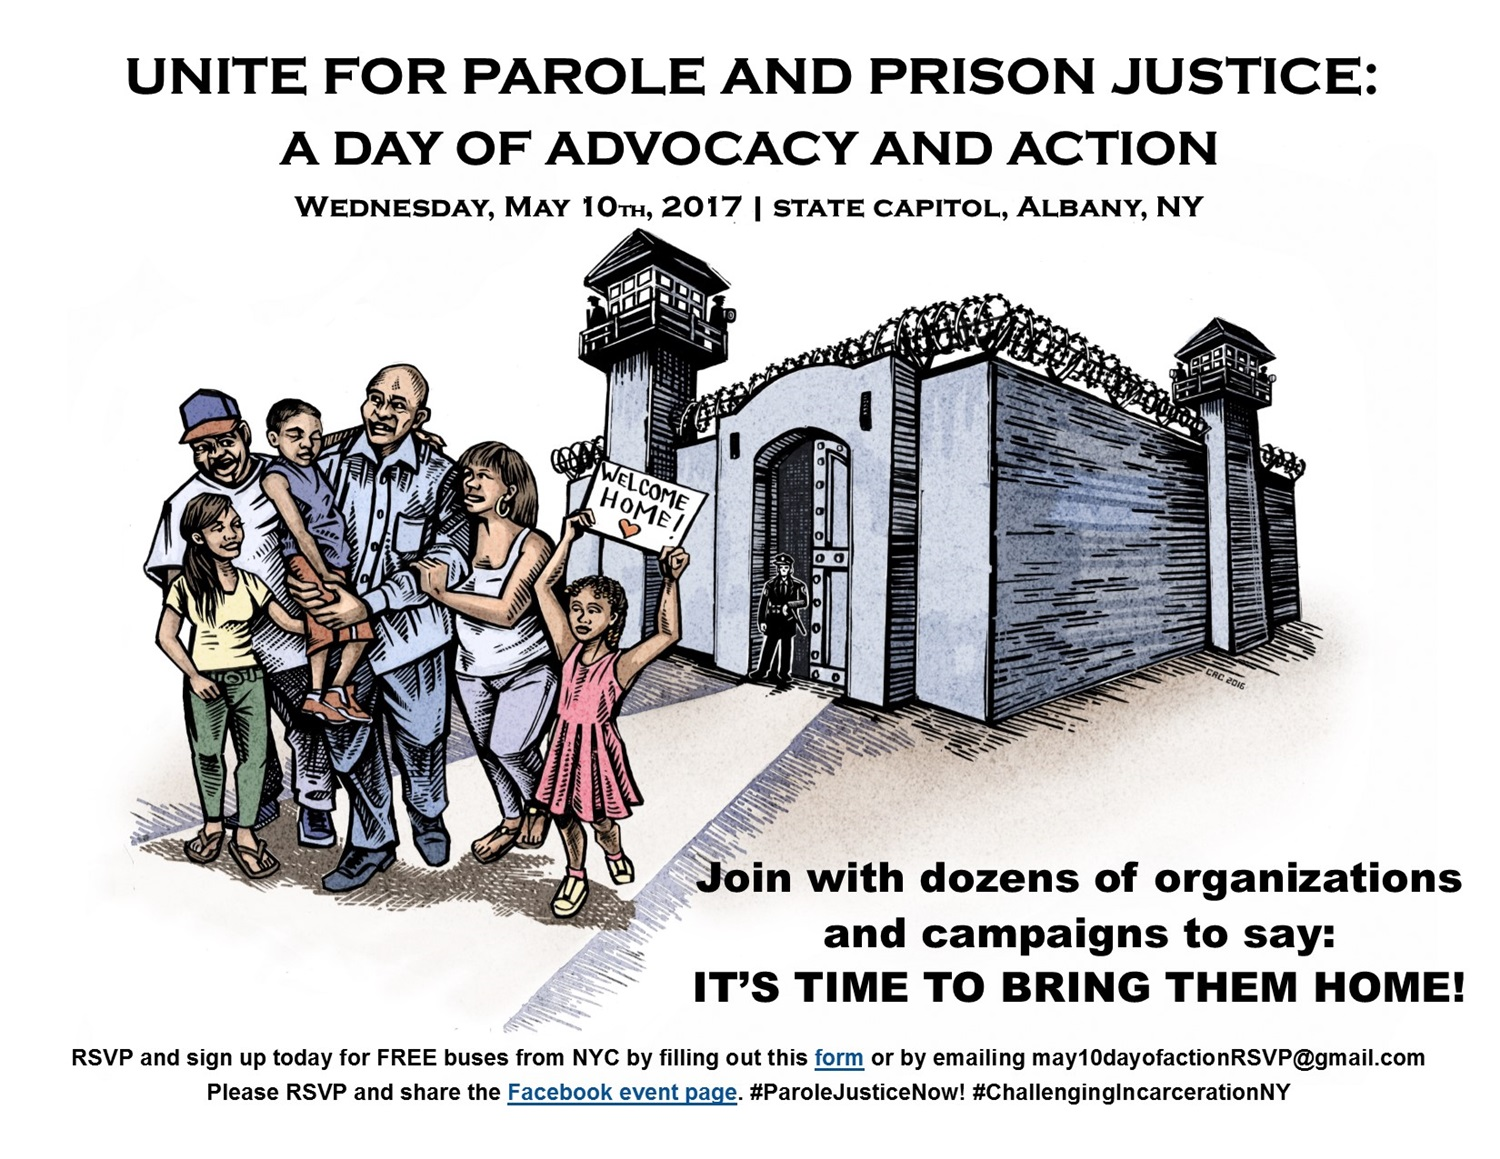 Unite for Parole and Prison Justice: A Day of Advocacy and Action